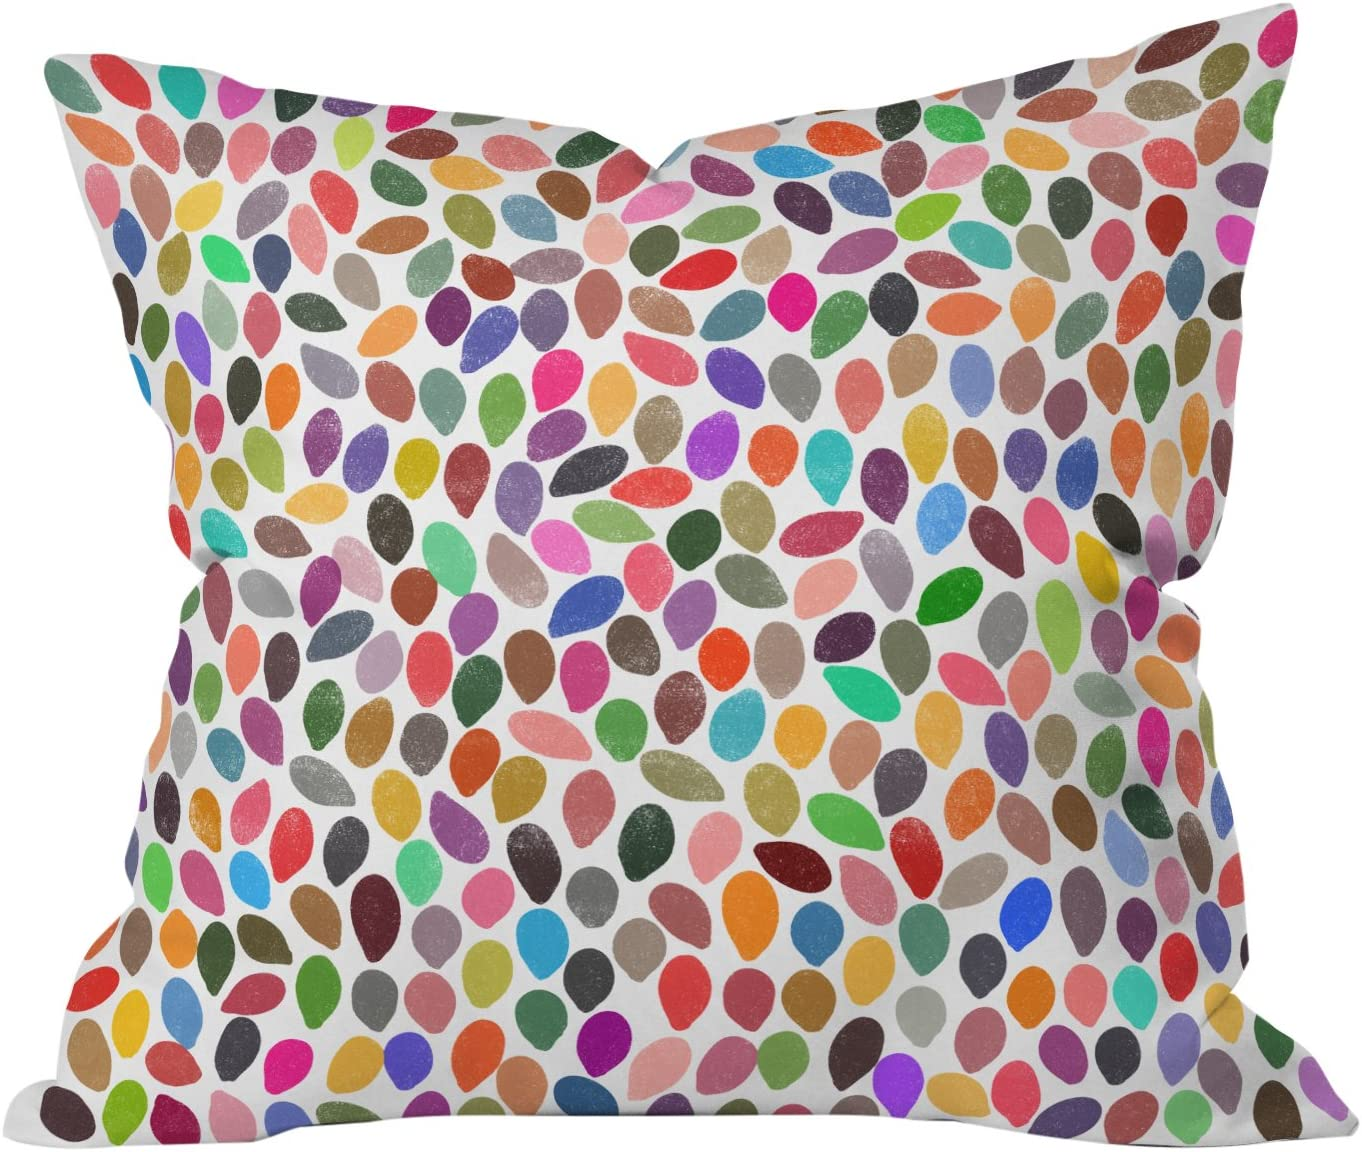 Deny Designs Garima Dhawan Rain 13 Throw Pillow, Extra Large 26 x 26